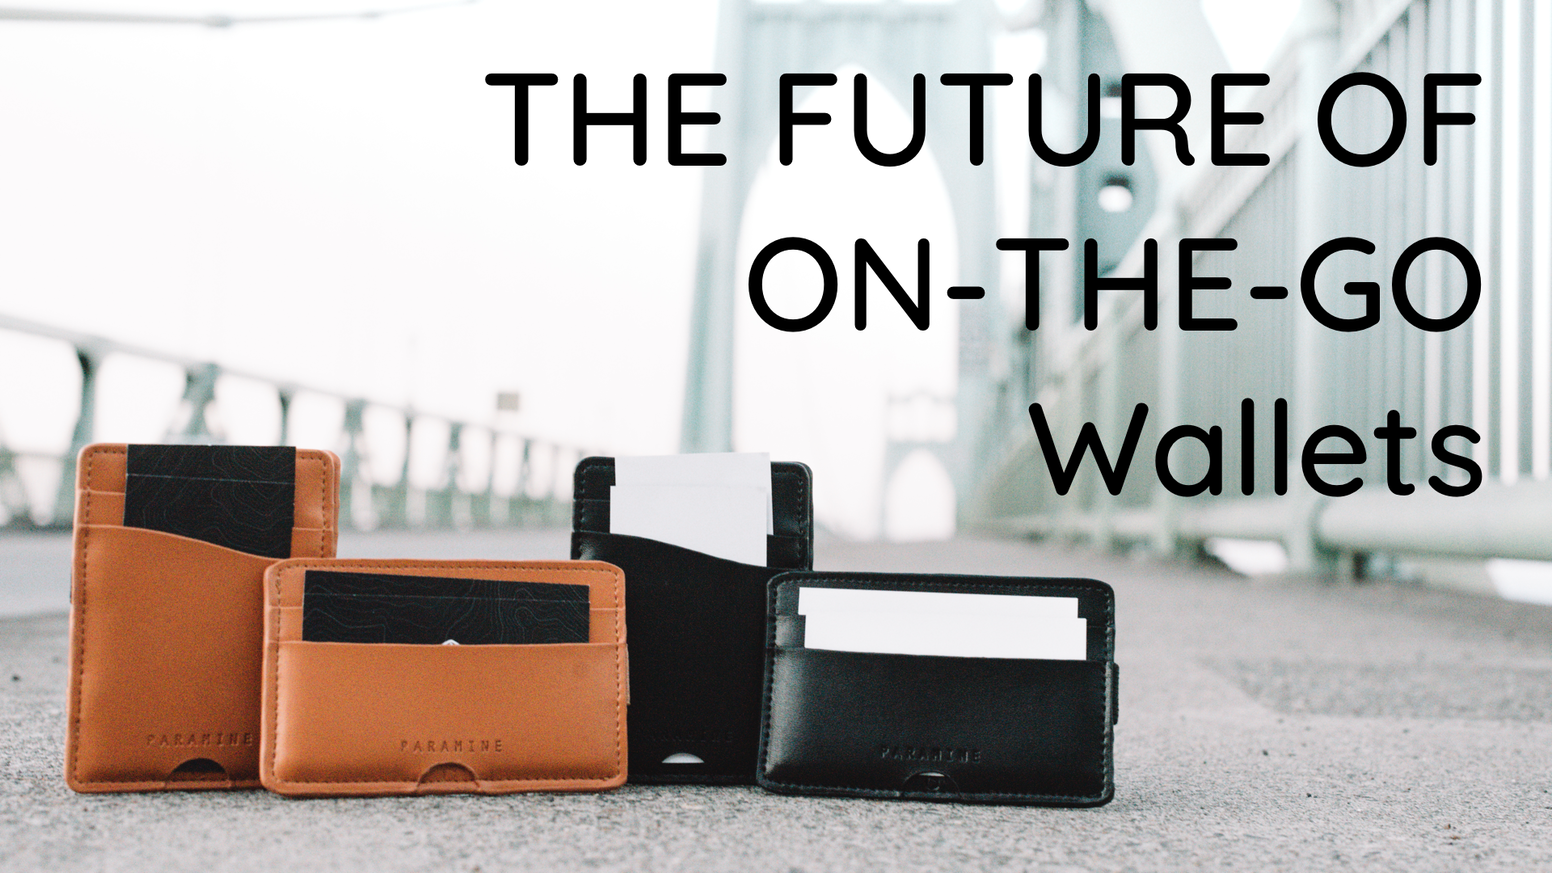 The World's most versatile, weather-resistant wallets. Minimal Design, engineered for quick actions, and made to impress.